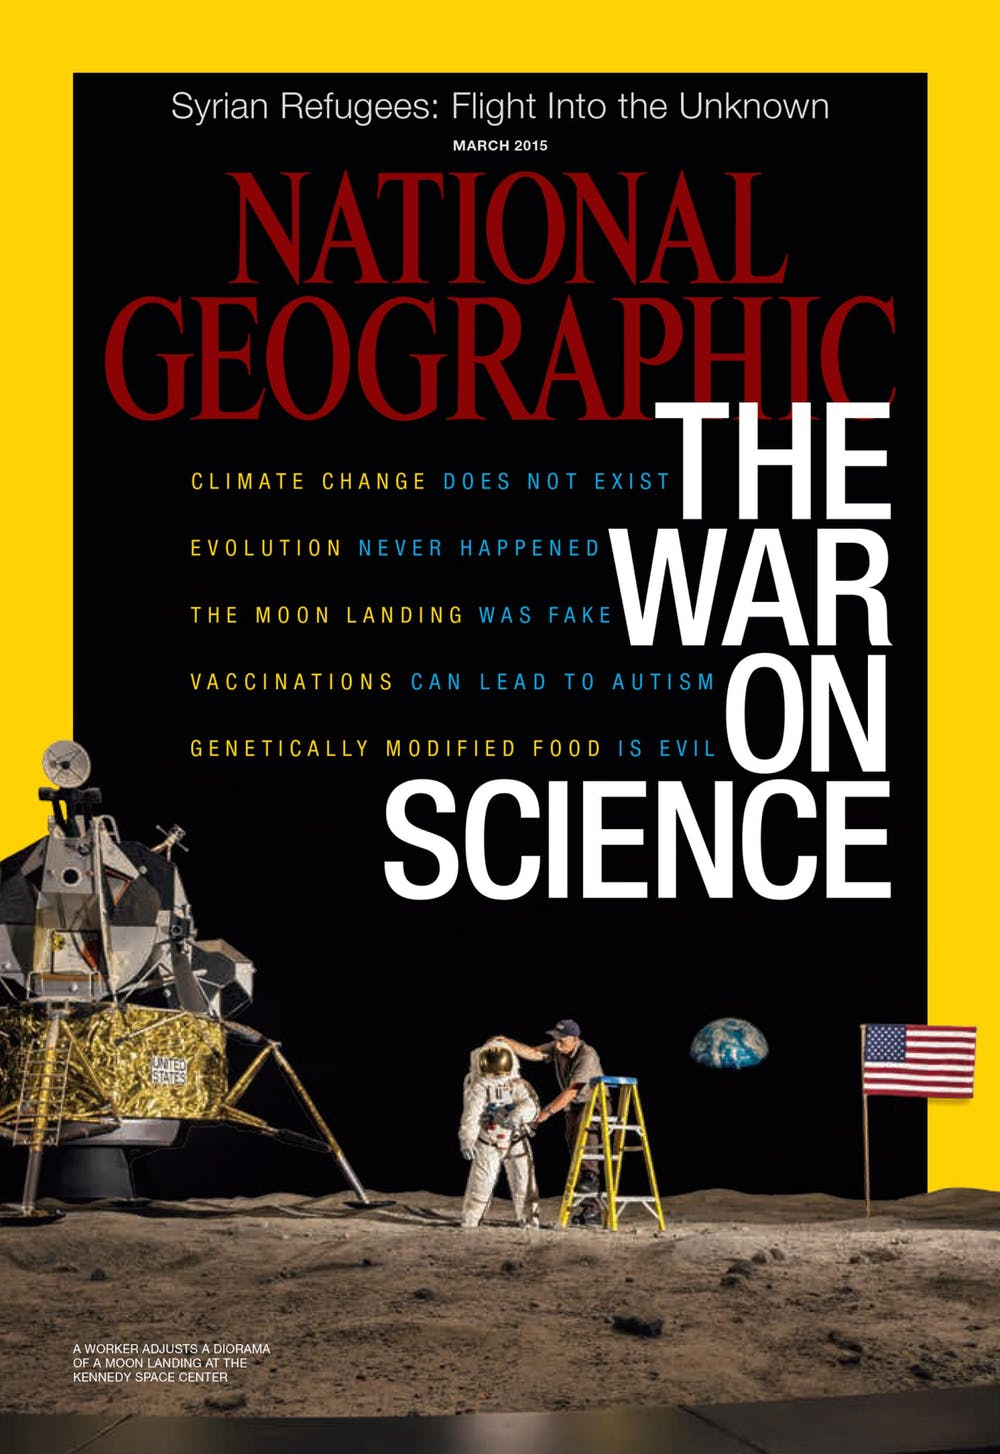 National Geographic, War of Science. Kredit: National Geographic.